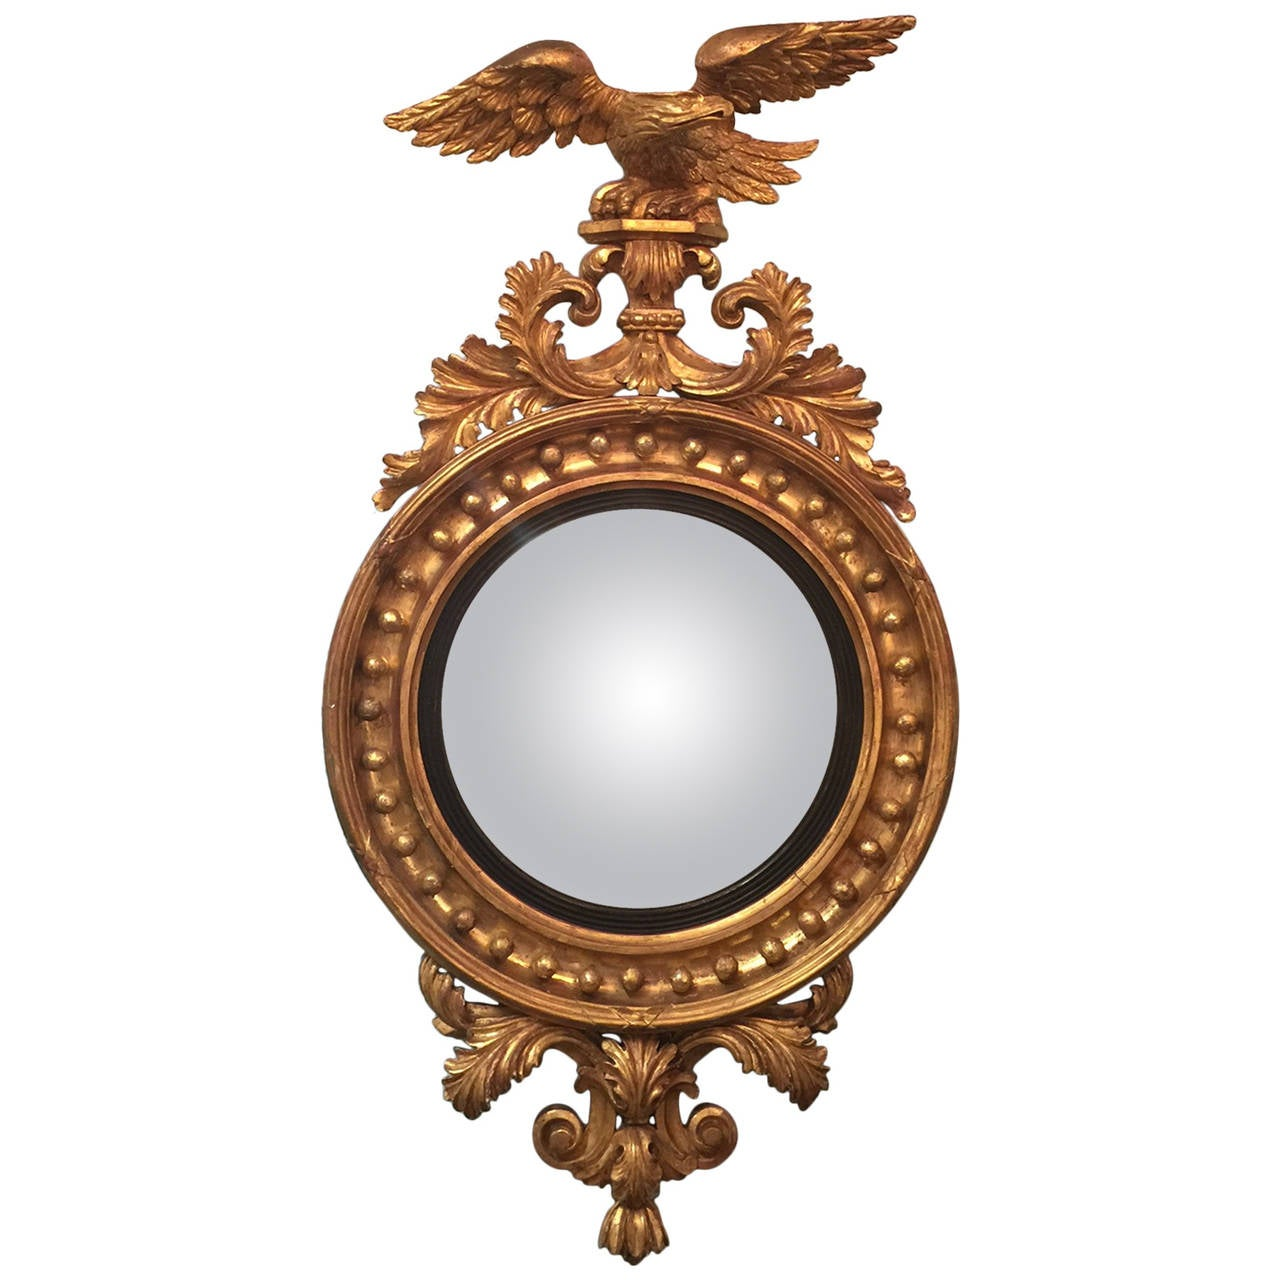 19th century federal period mirror at 1stdibs